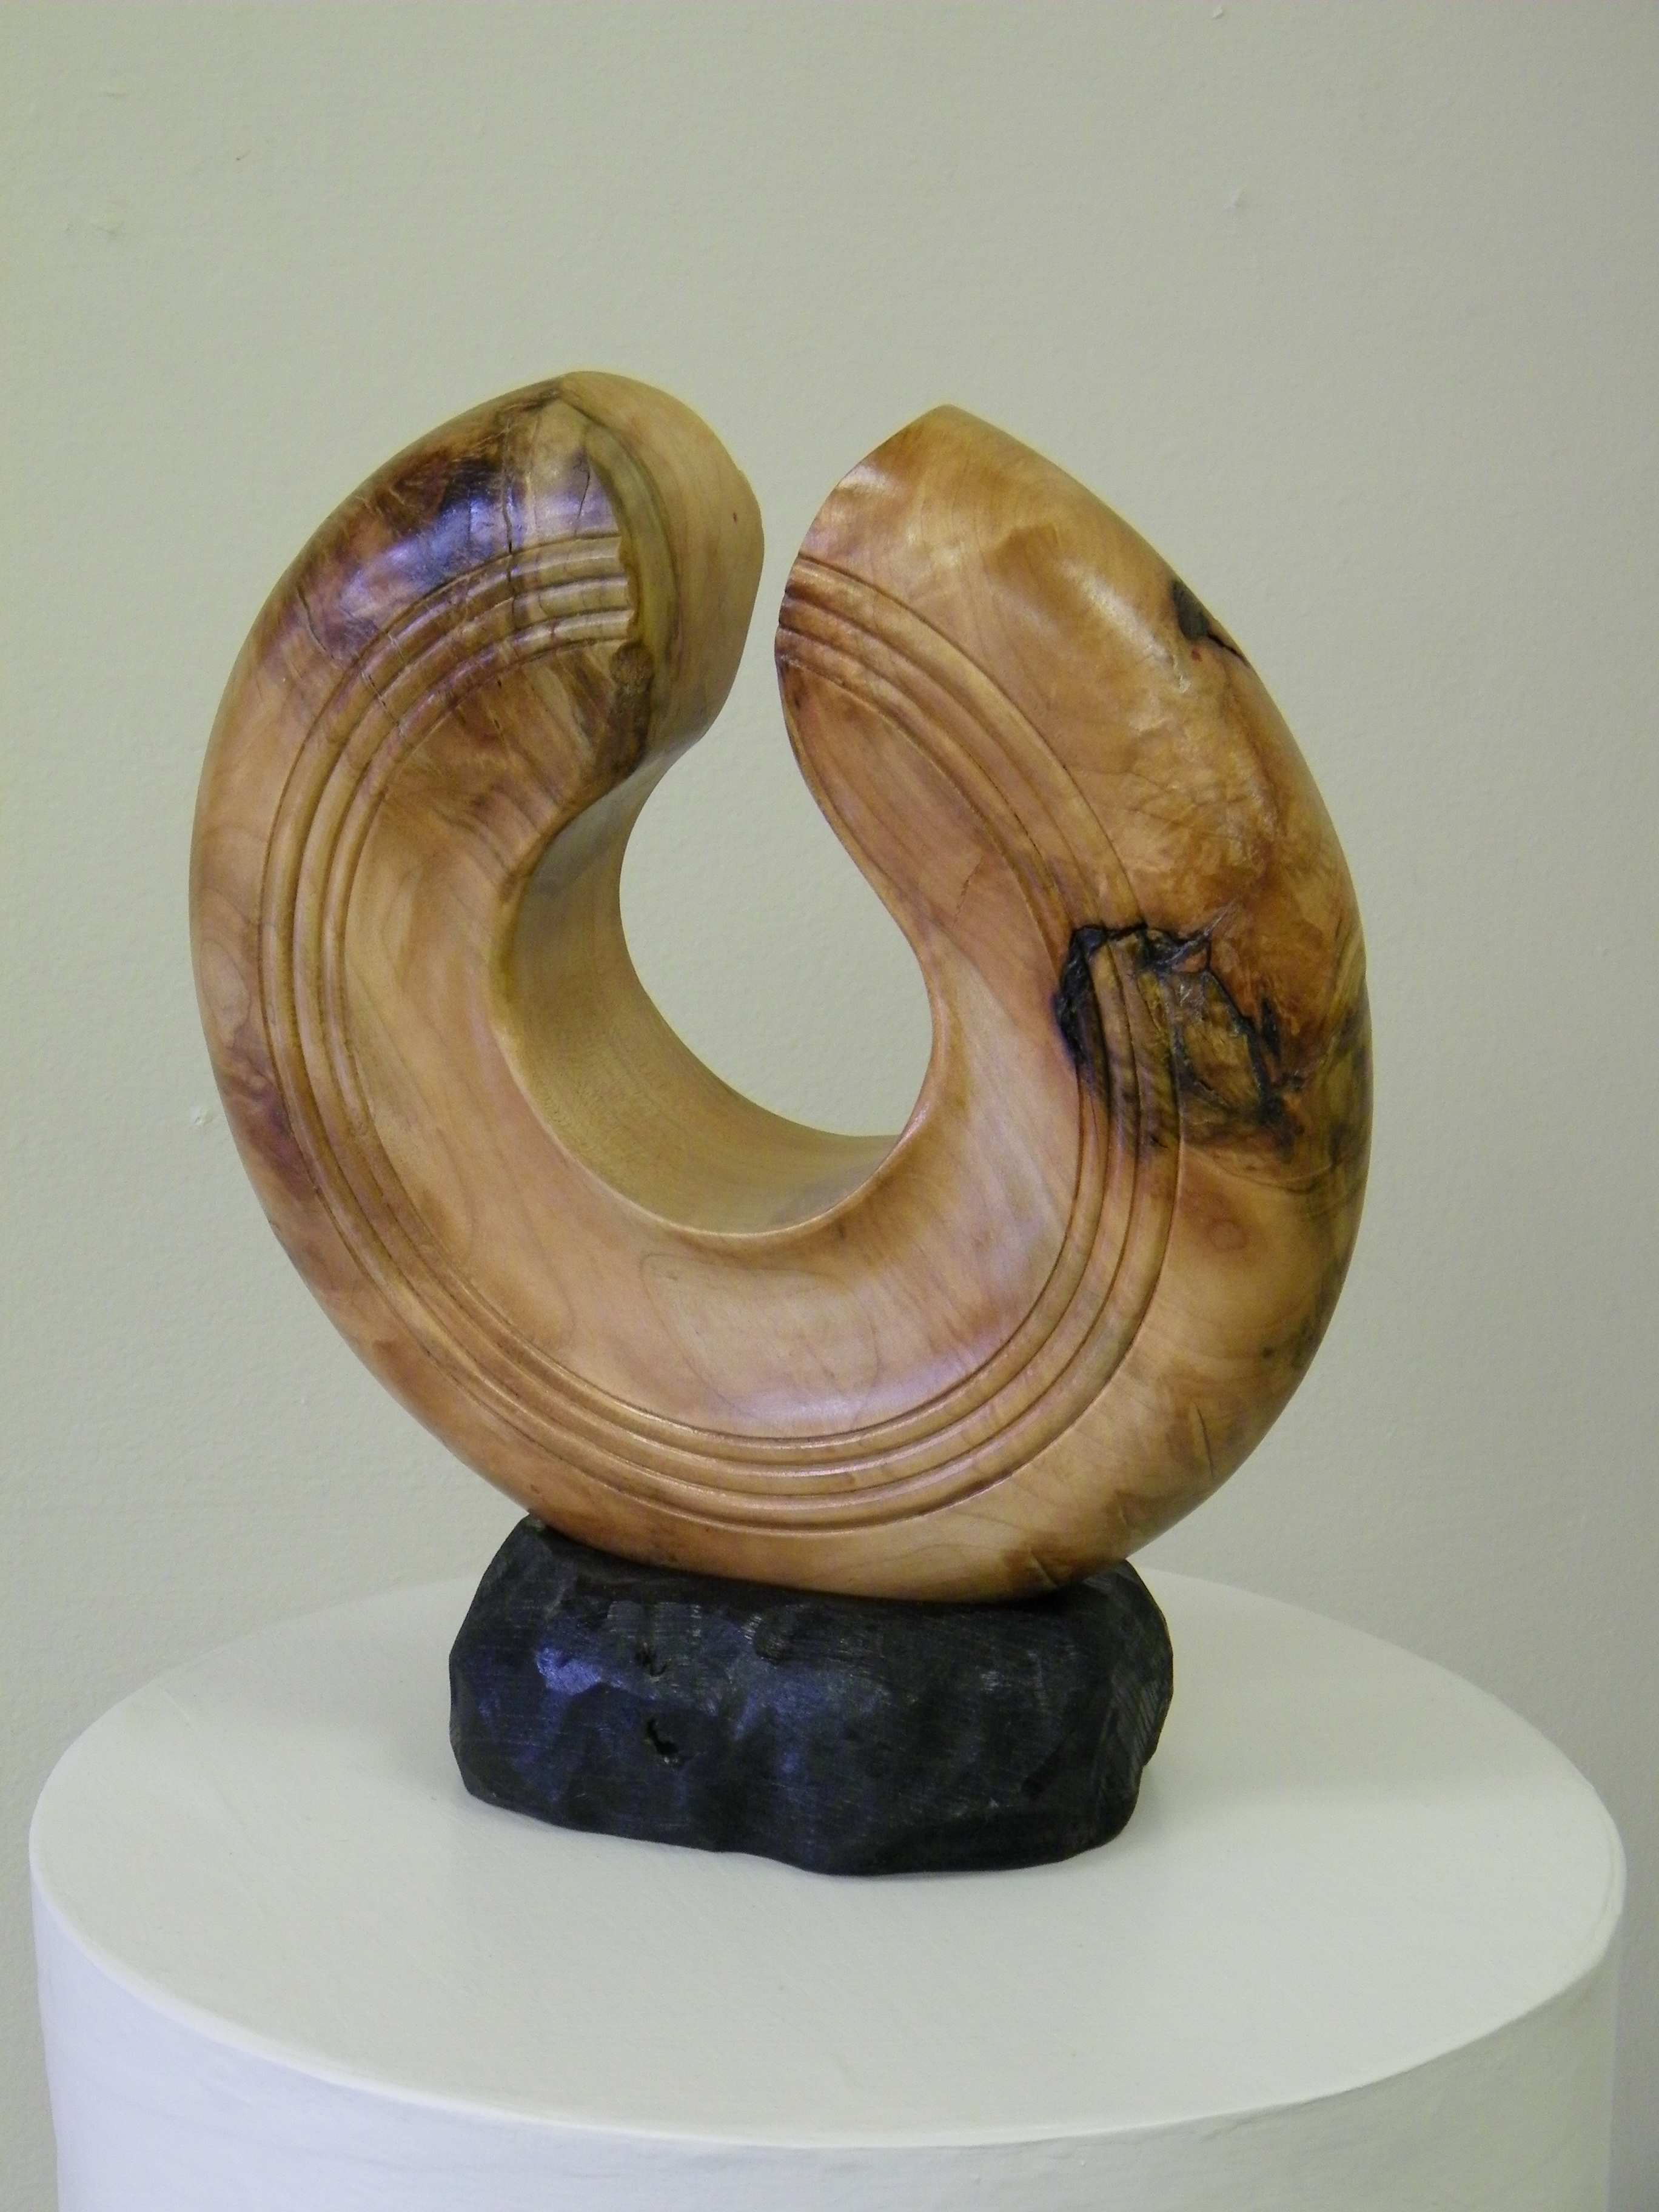 Sugar maple sculpture